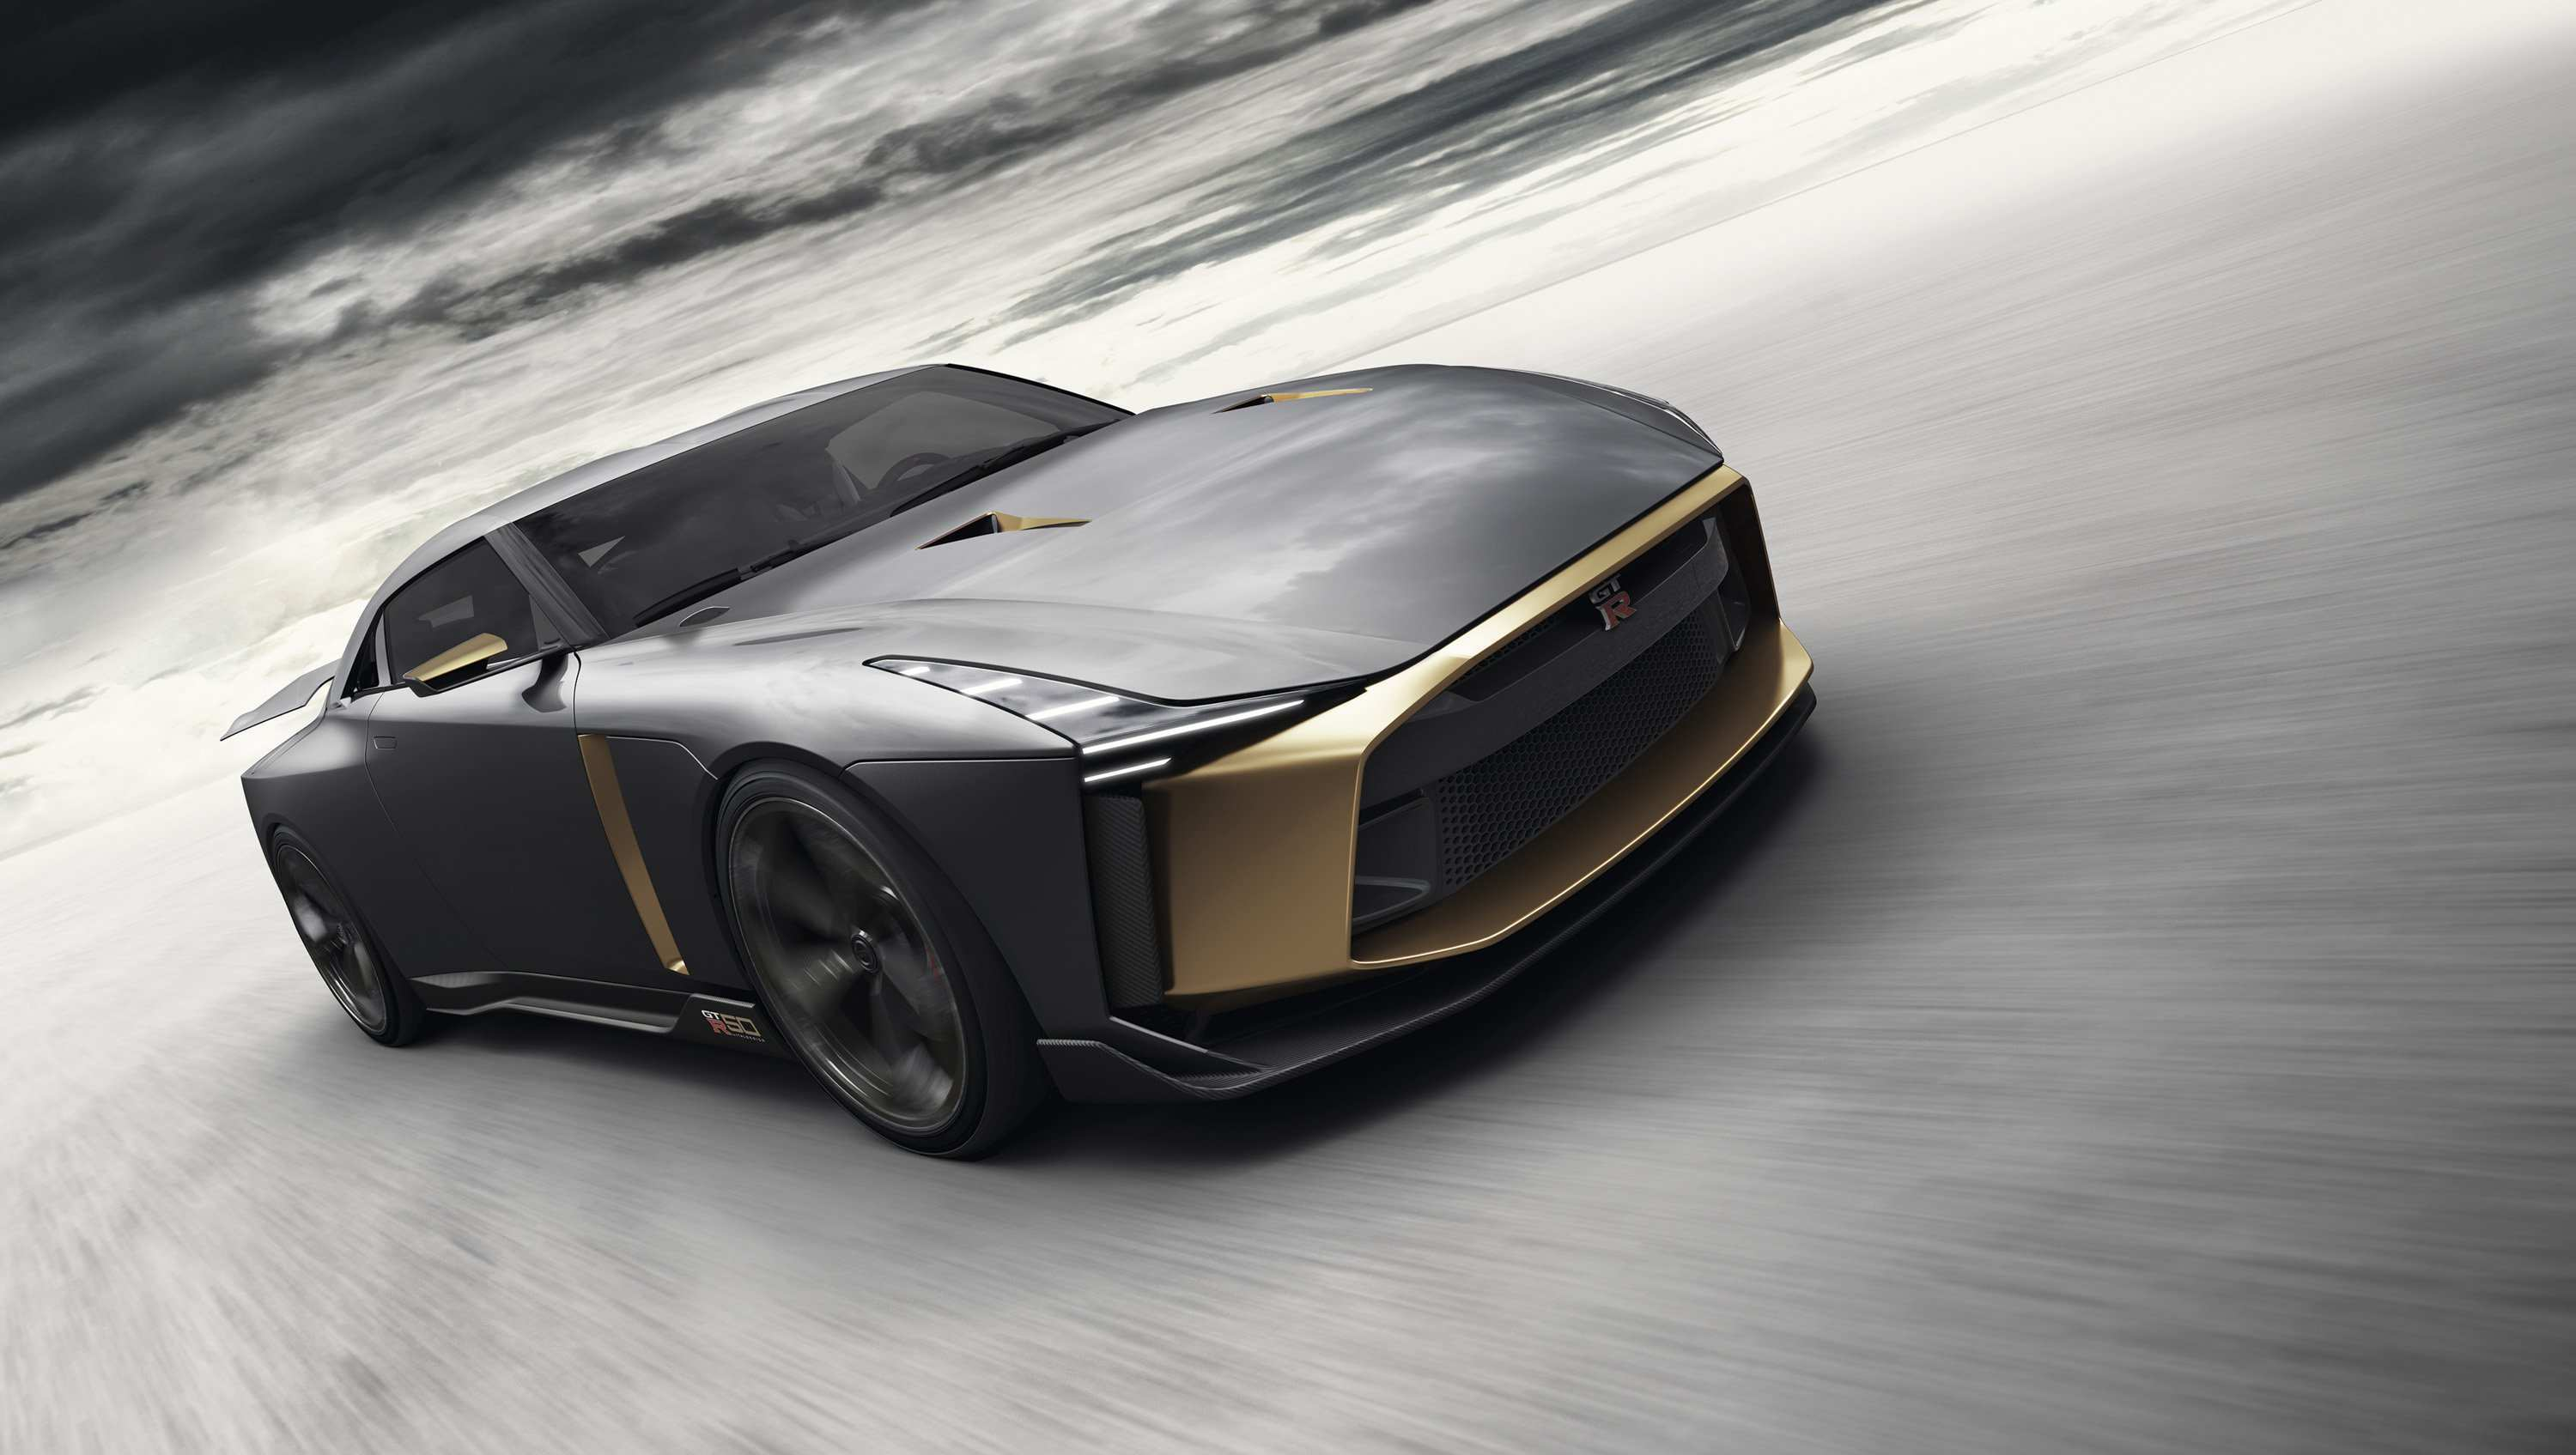 45 Concept of Nissan Gtr Nismo 2020 New Review for Nissan Gtr Nismo 2020